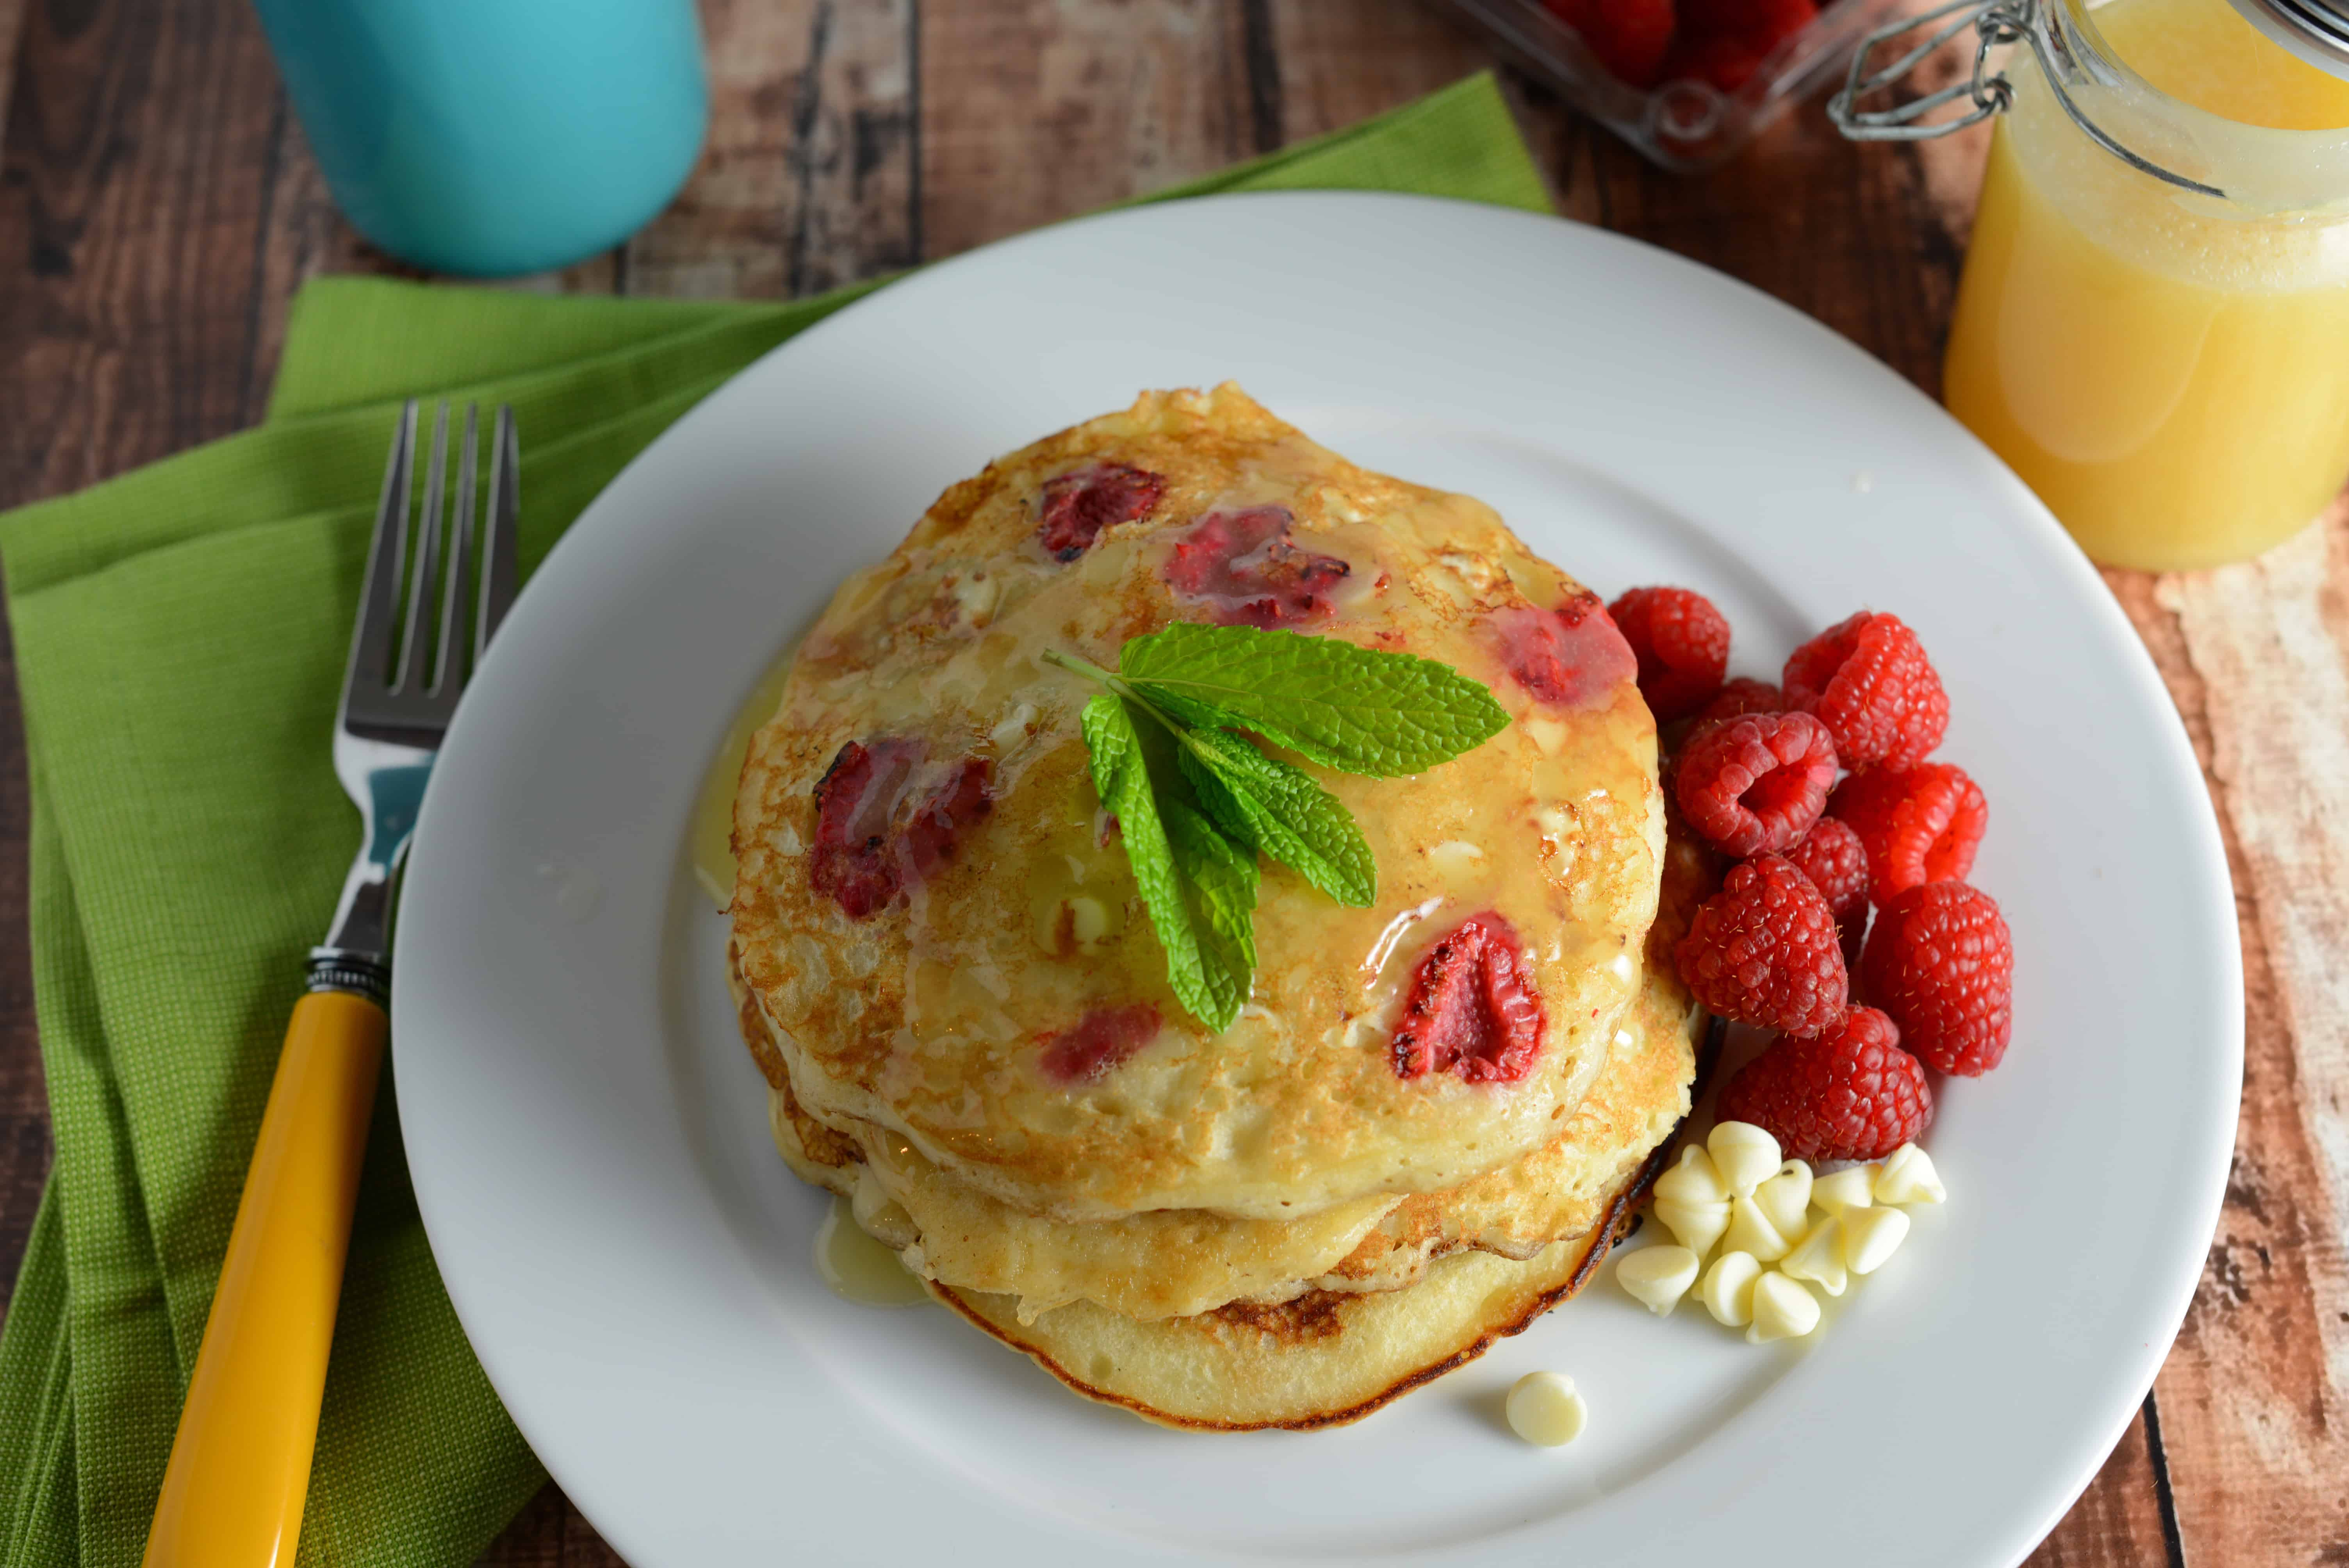 White Chocolate and Raspberry Pancakes Recipe - The perfect fluffy buttermilk pancakes dotted with fresh raspberries, white chocolate chips and homemade Dutch honey syrup. www.savoryexperiments.com